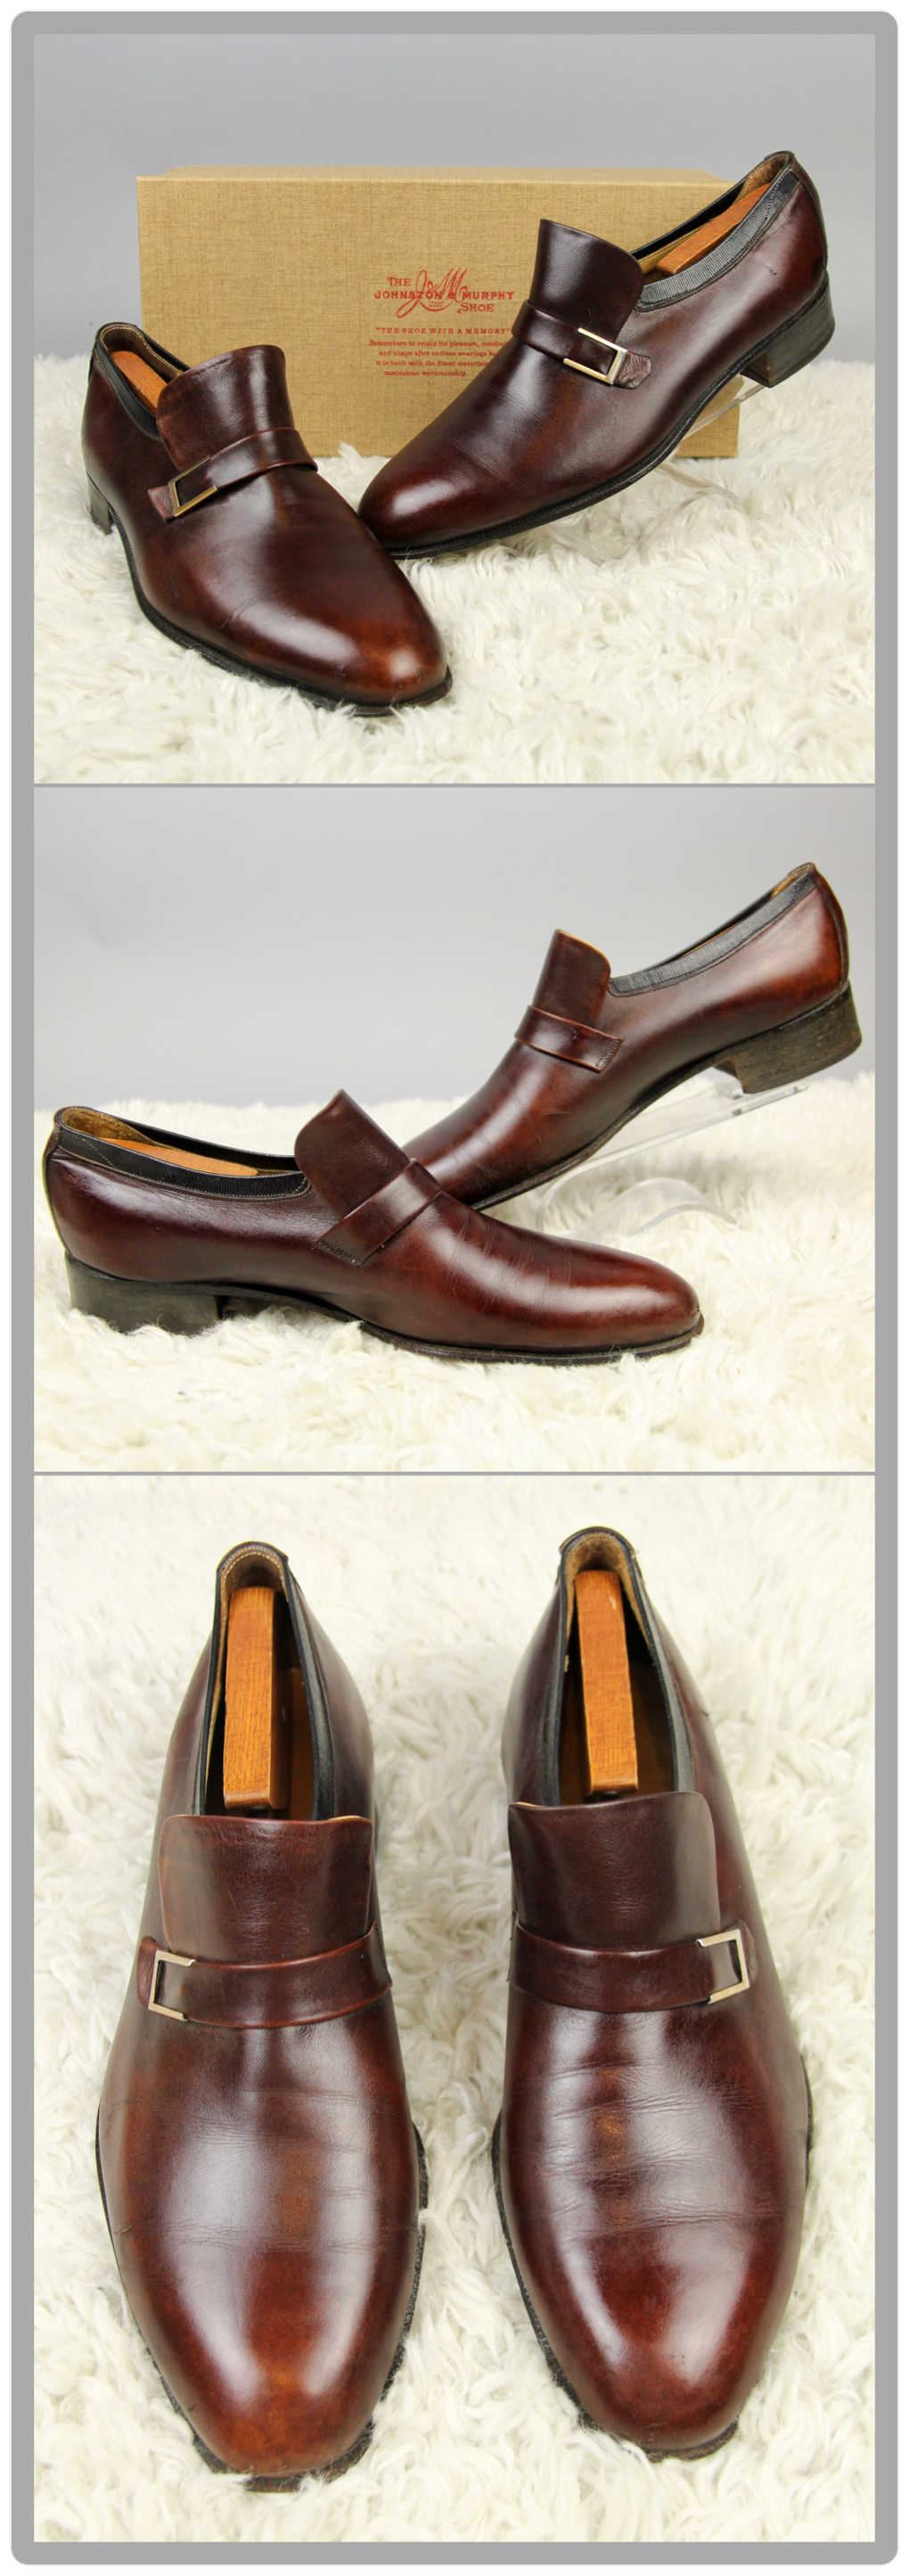 Gorgeous pair of 1970s vintage mahogany brown leather loafers, men's size 9D.  Made by The Johnson & Murphy Shoe Company